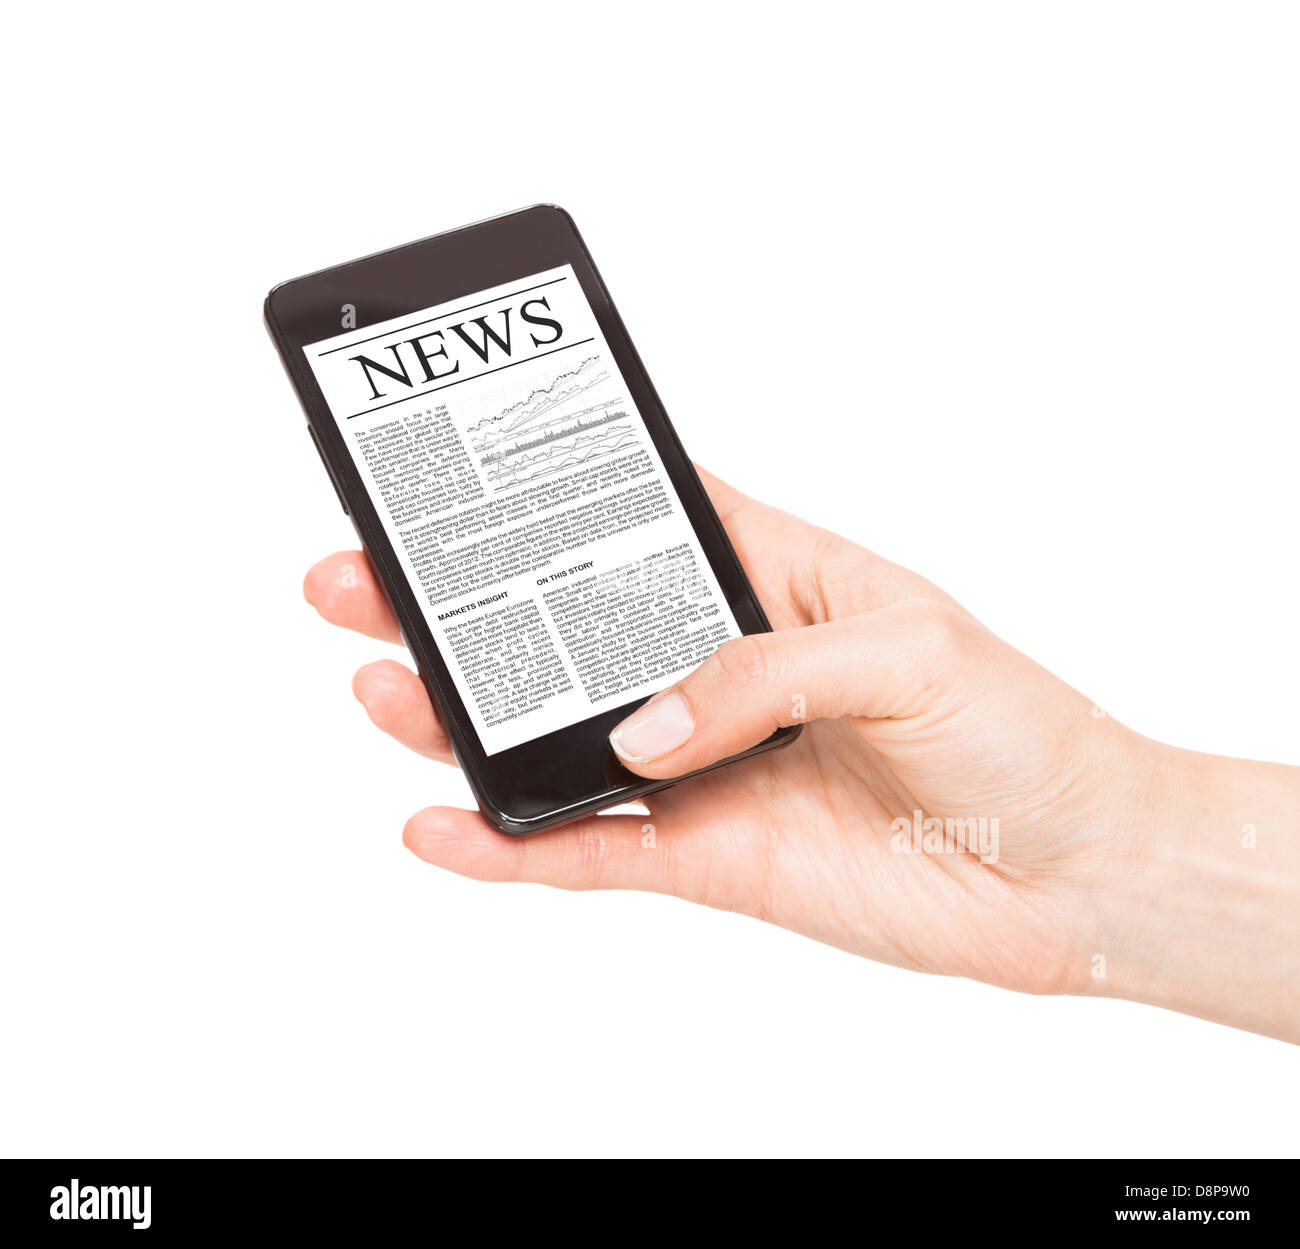 News on mobile phone, smart phone. Isolated on white. - Stock Image